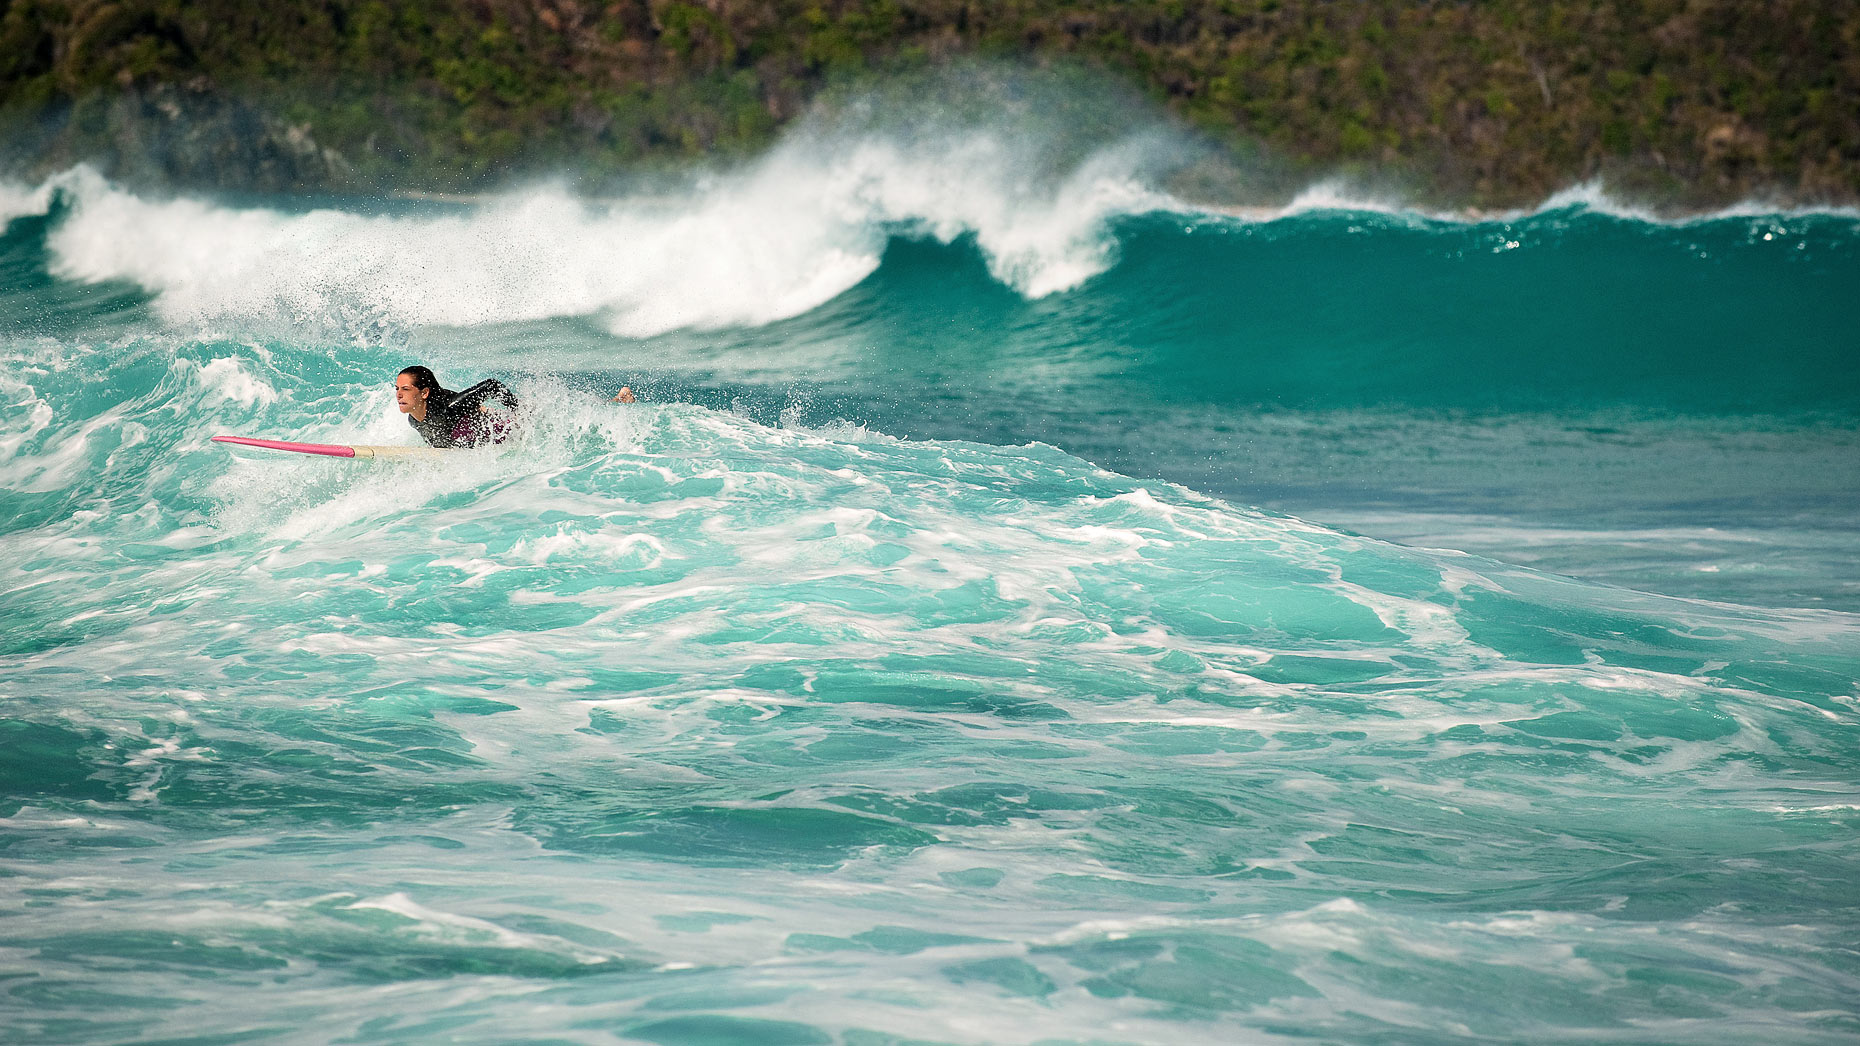 Surfing in Tortola, British Virgin Islands.